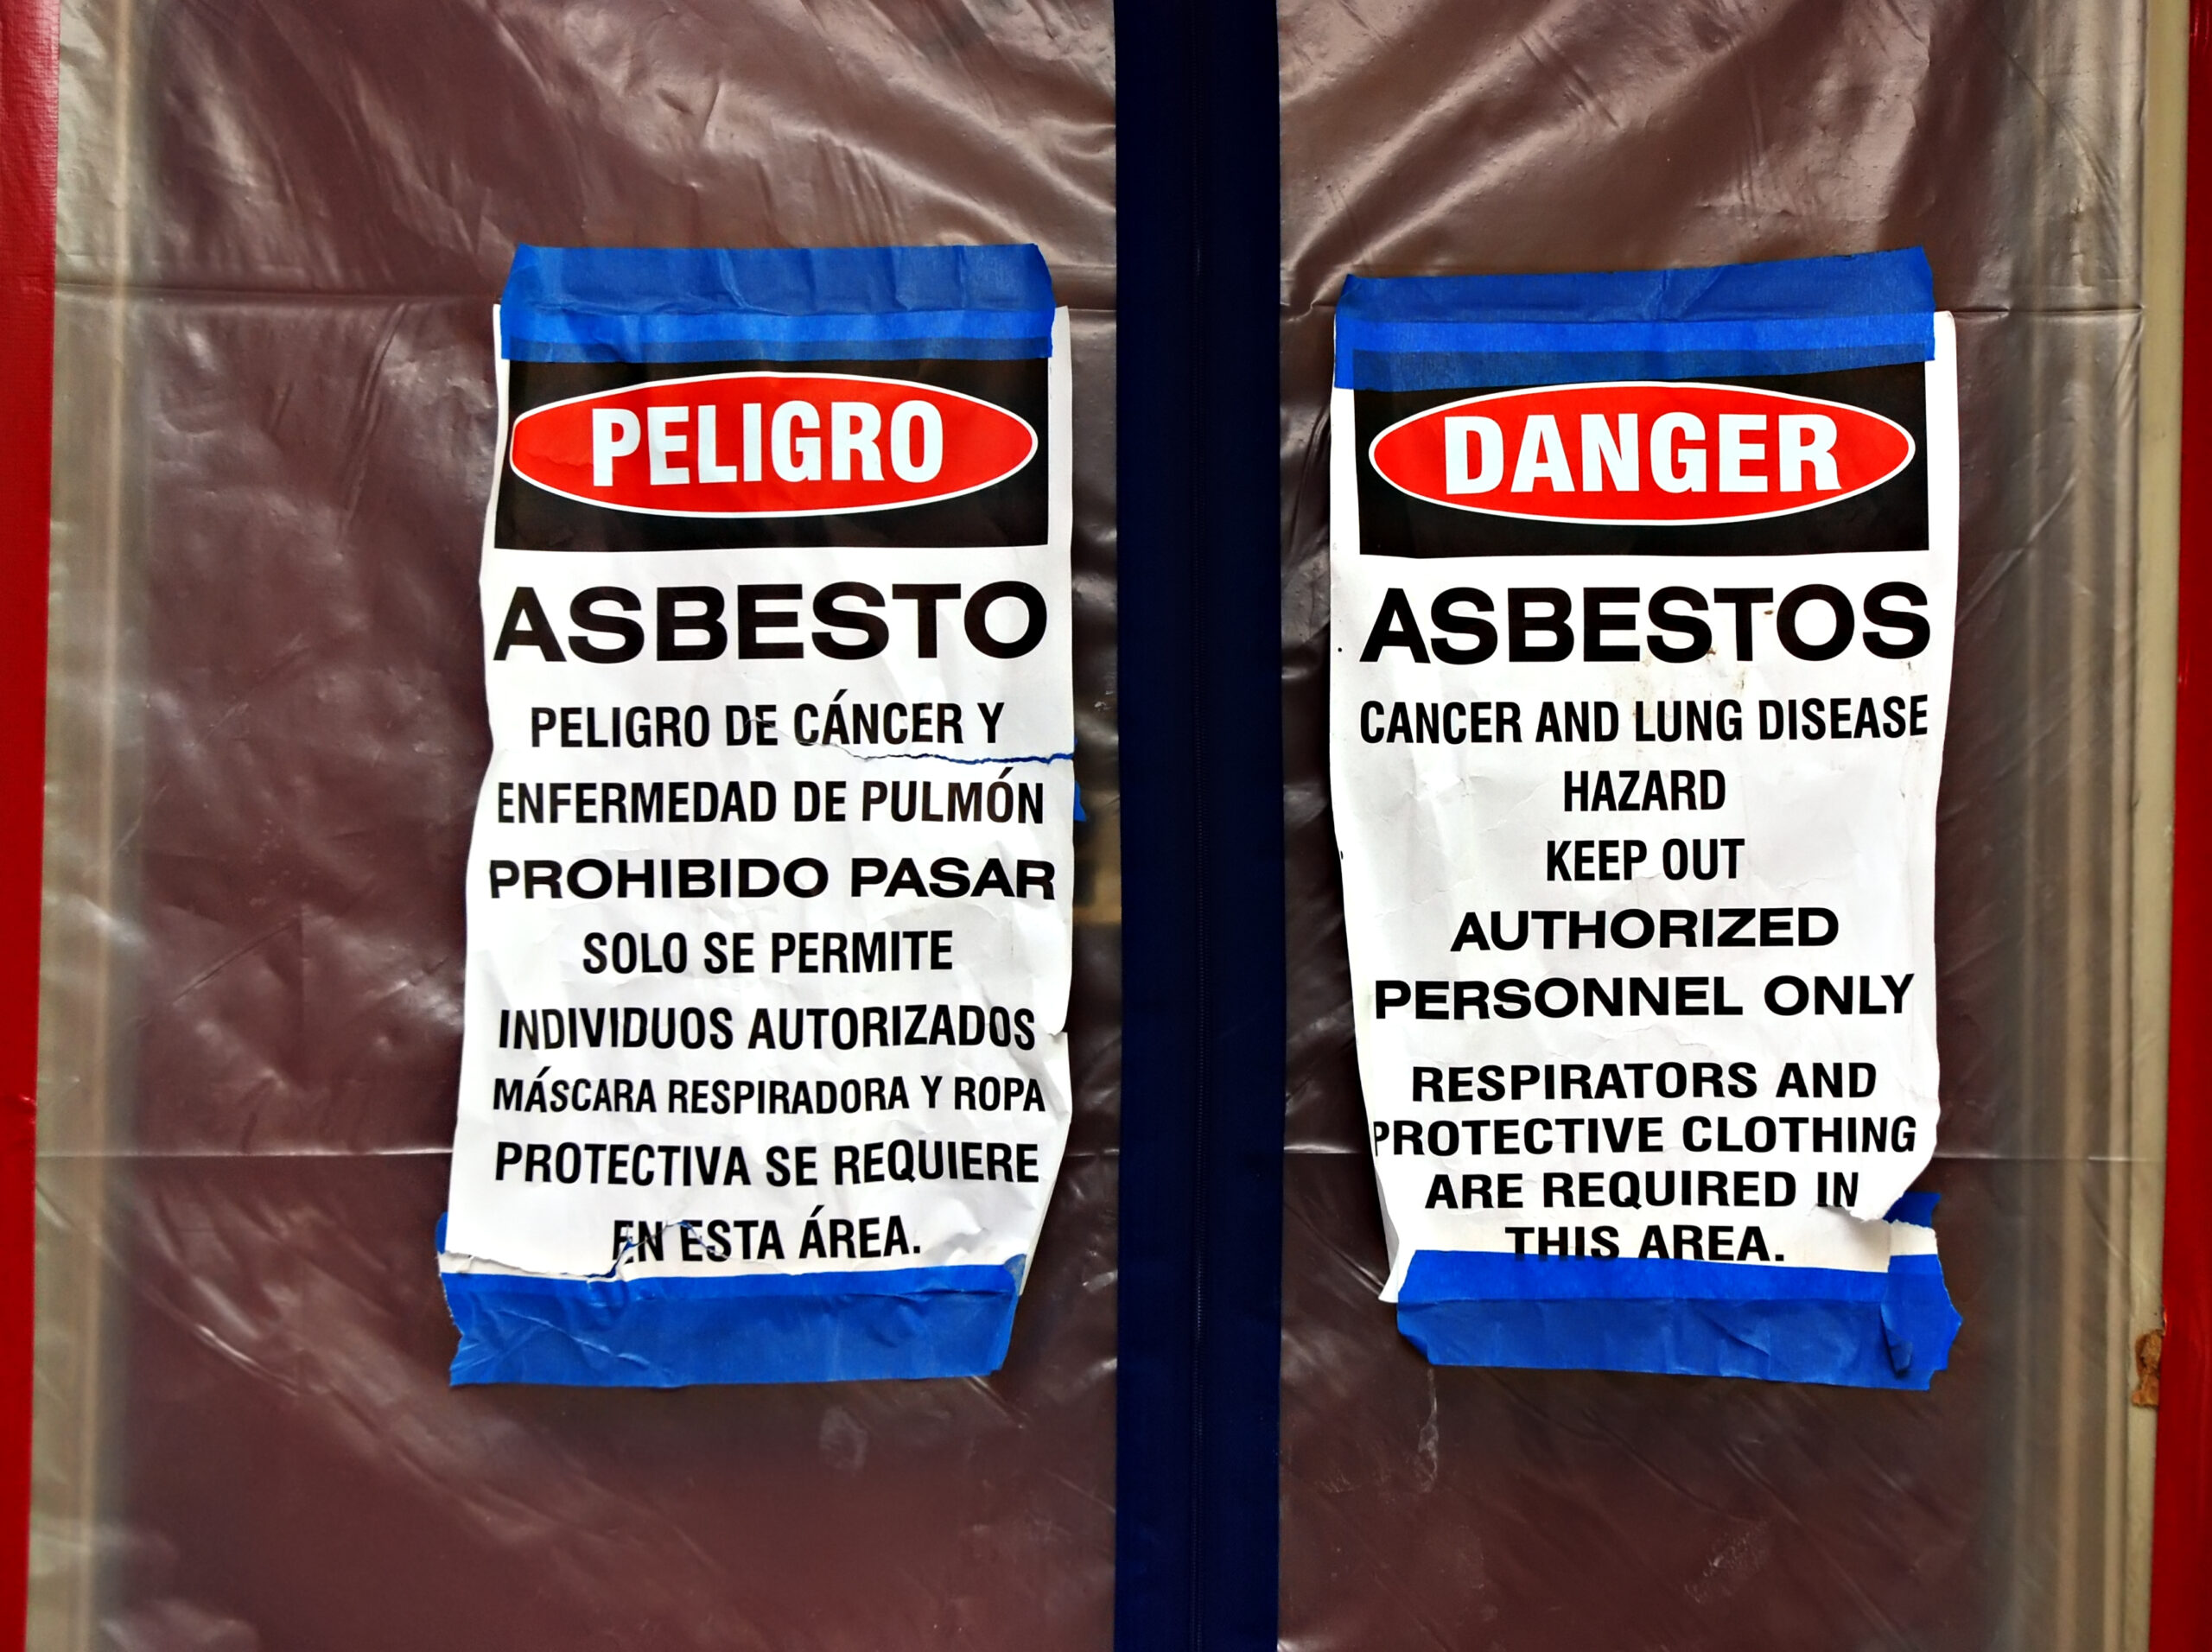 Our Services - Asbestos Abatement